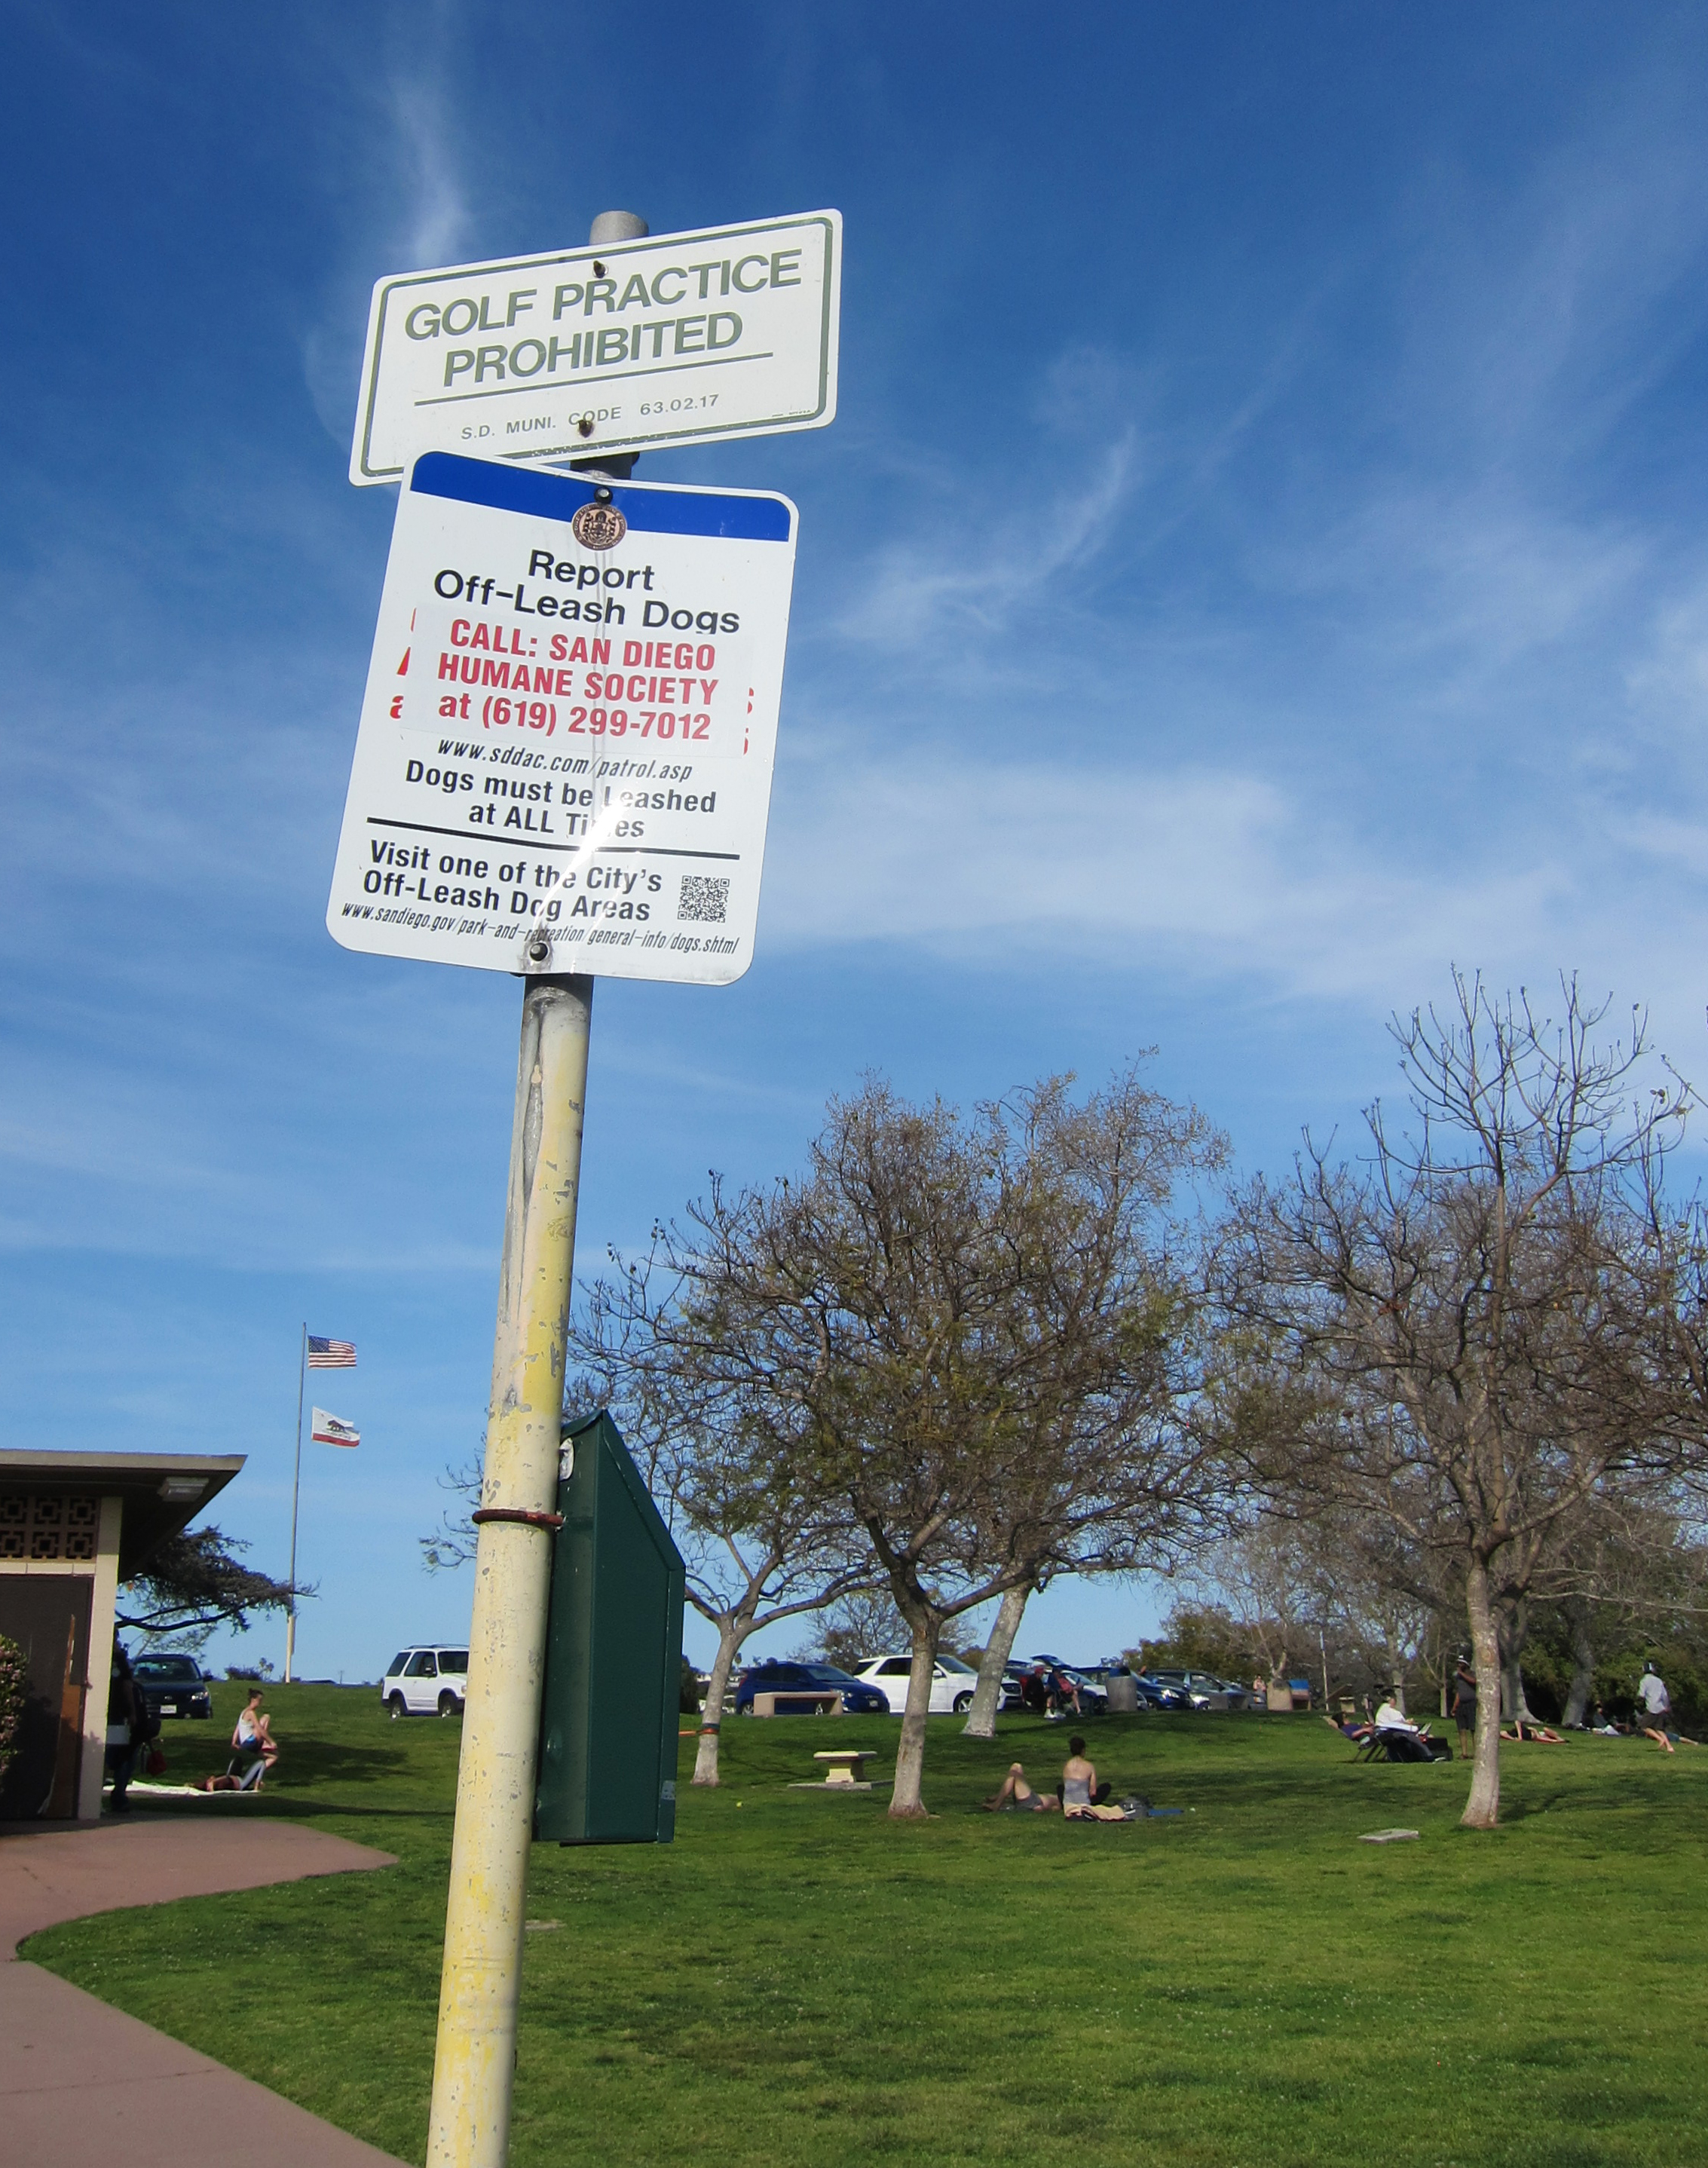 No unleashed dogs or golfing at Kate Sessions.